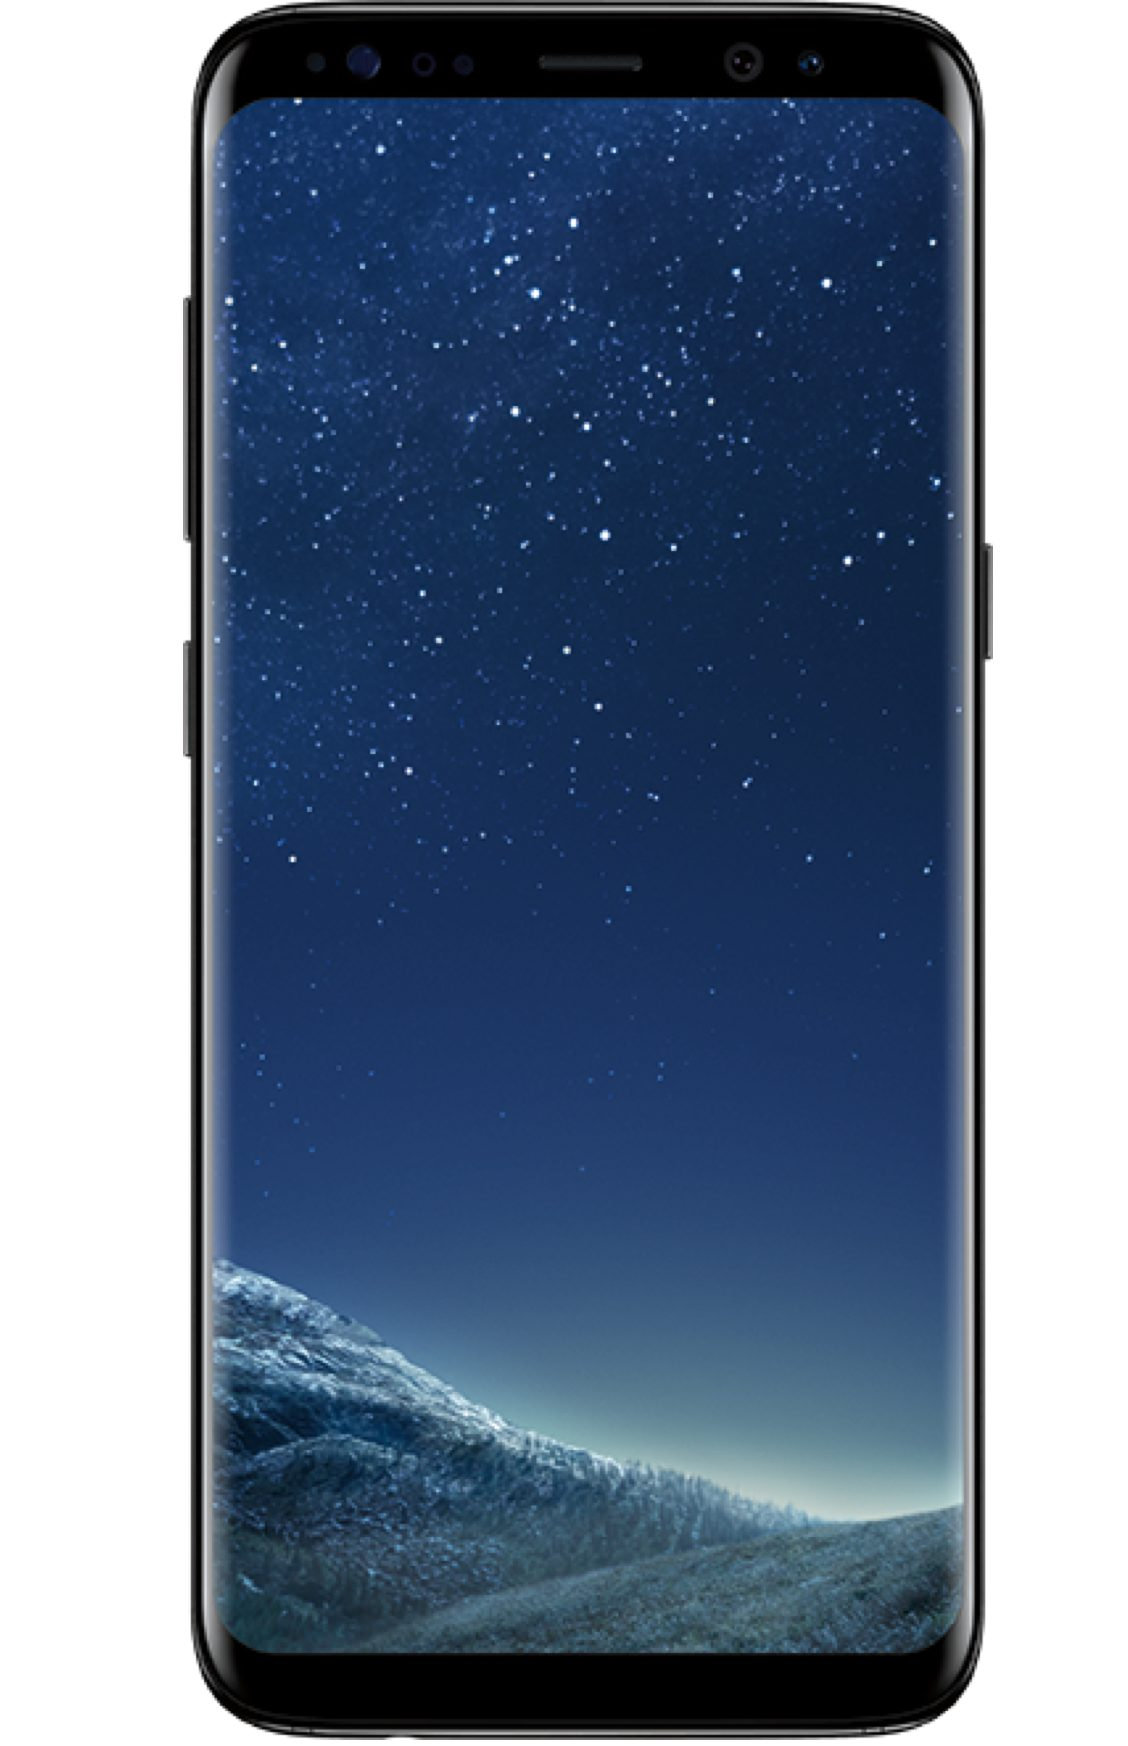 Save $50 on Samsung Galaxy S8